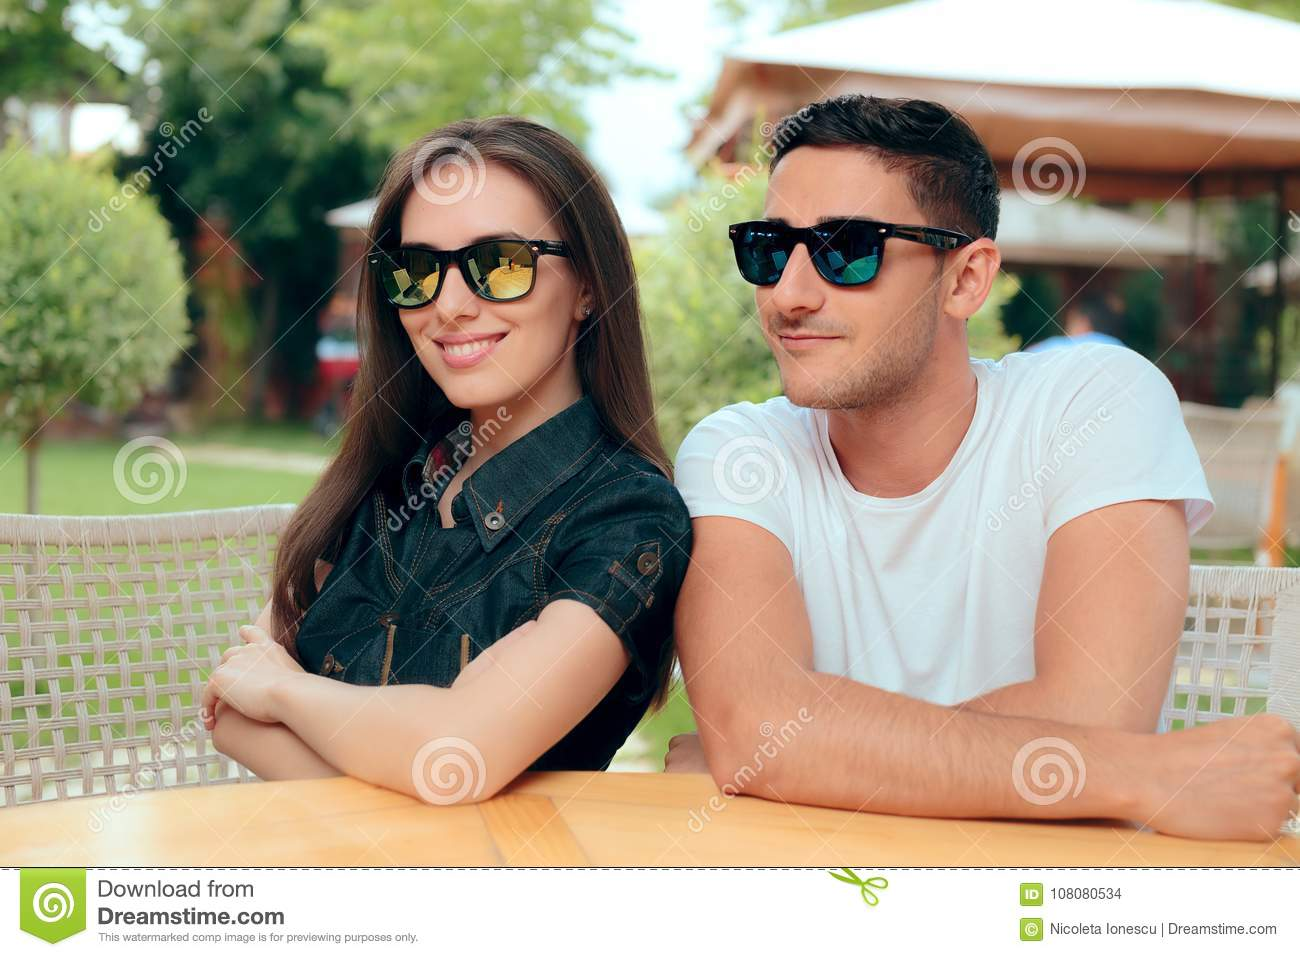 Is dating the same as having a girlfriend